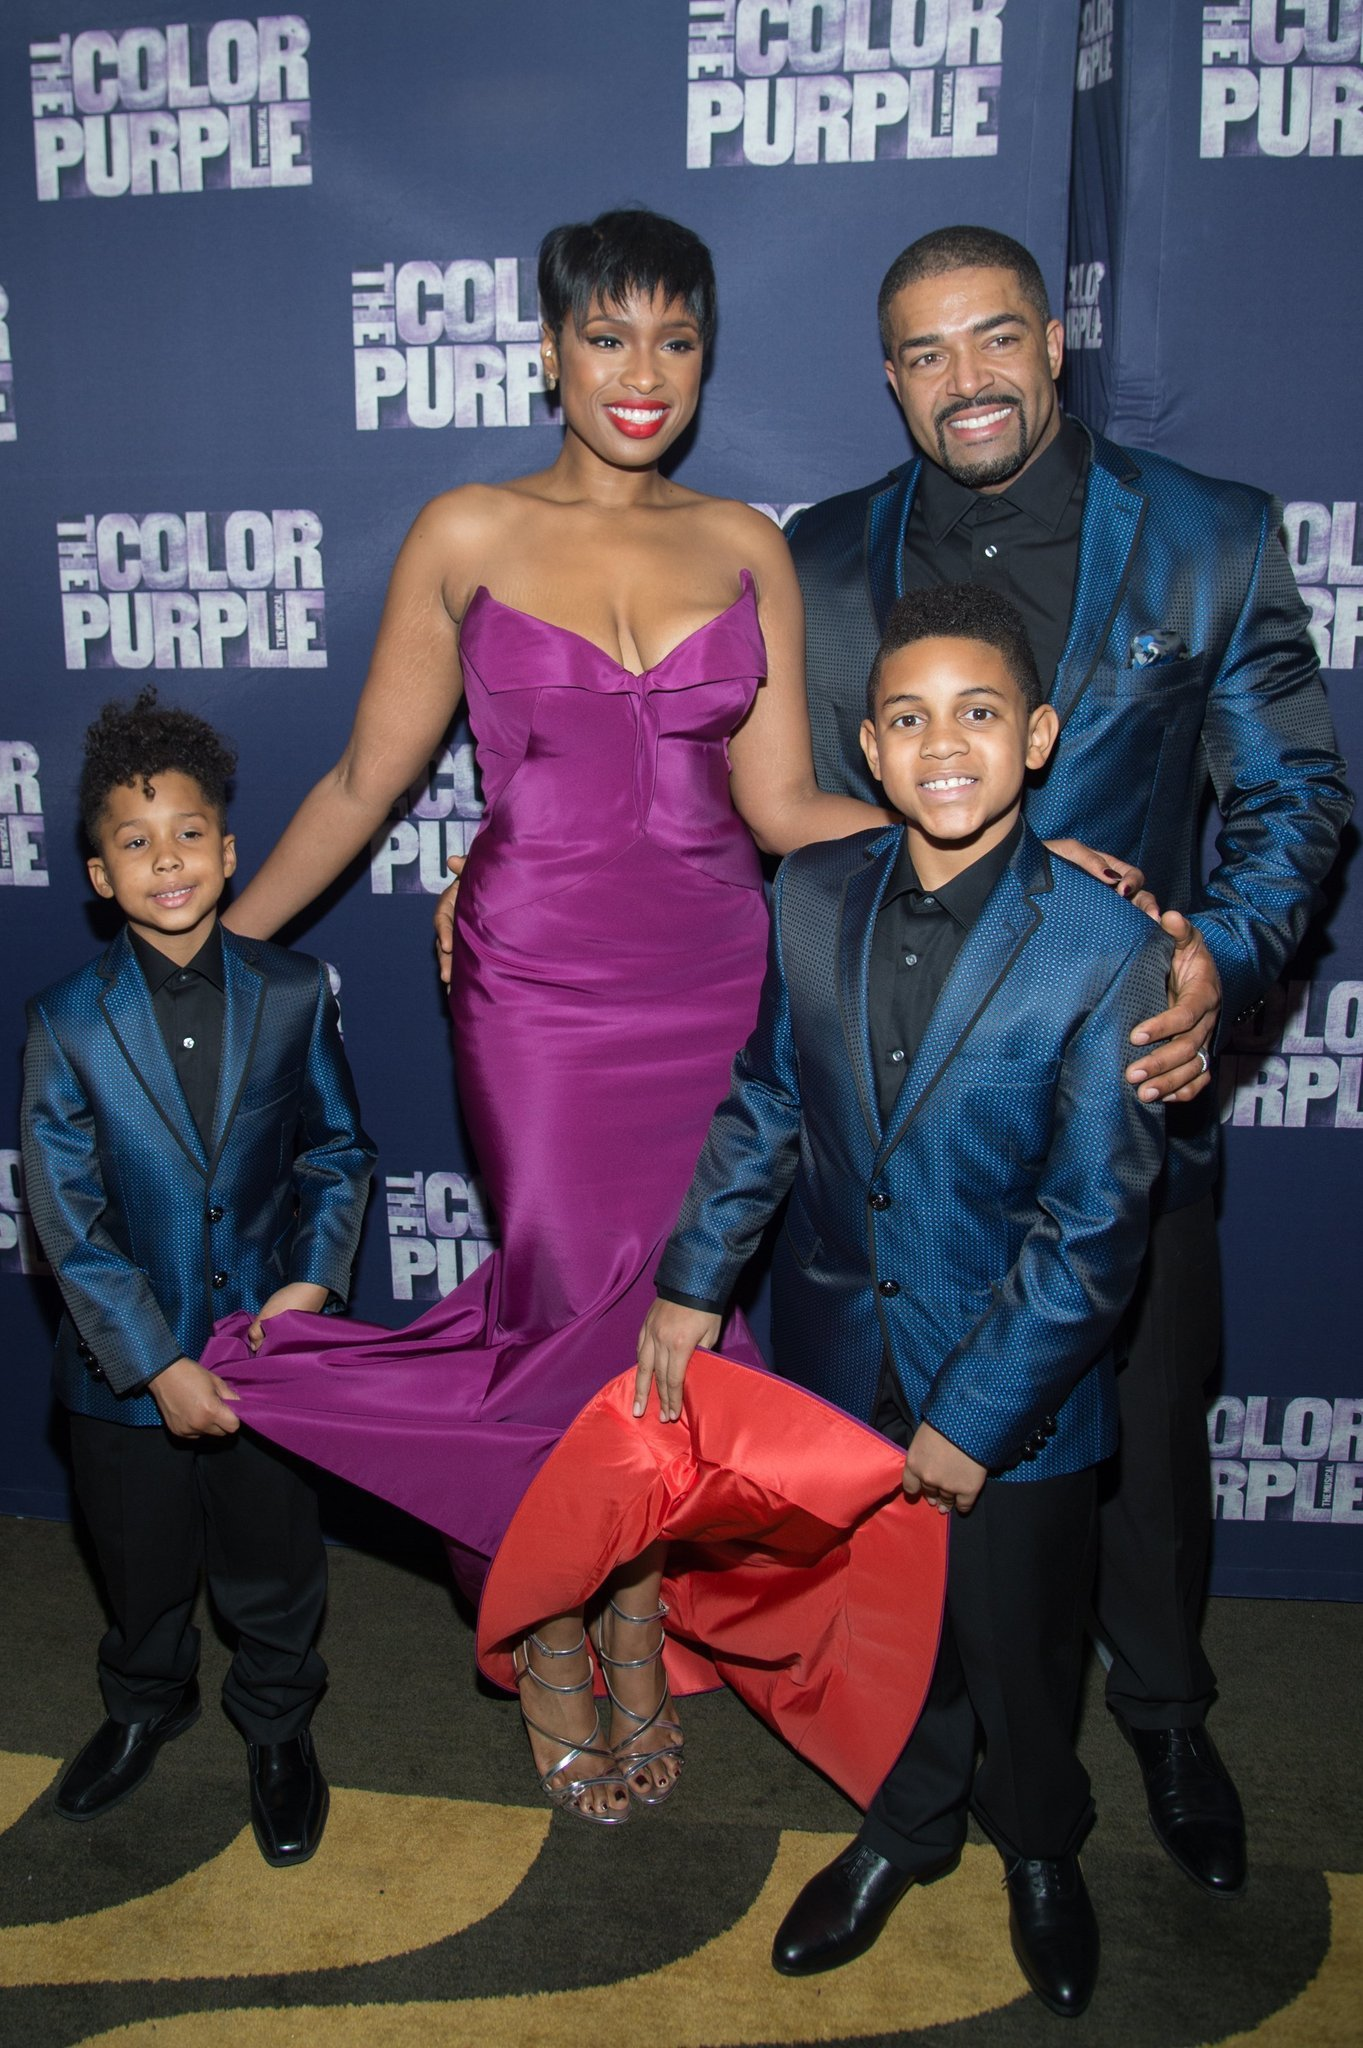 jennifer hudson says her son wants to be a singer too